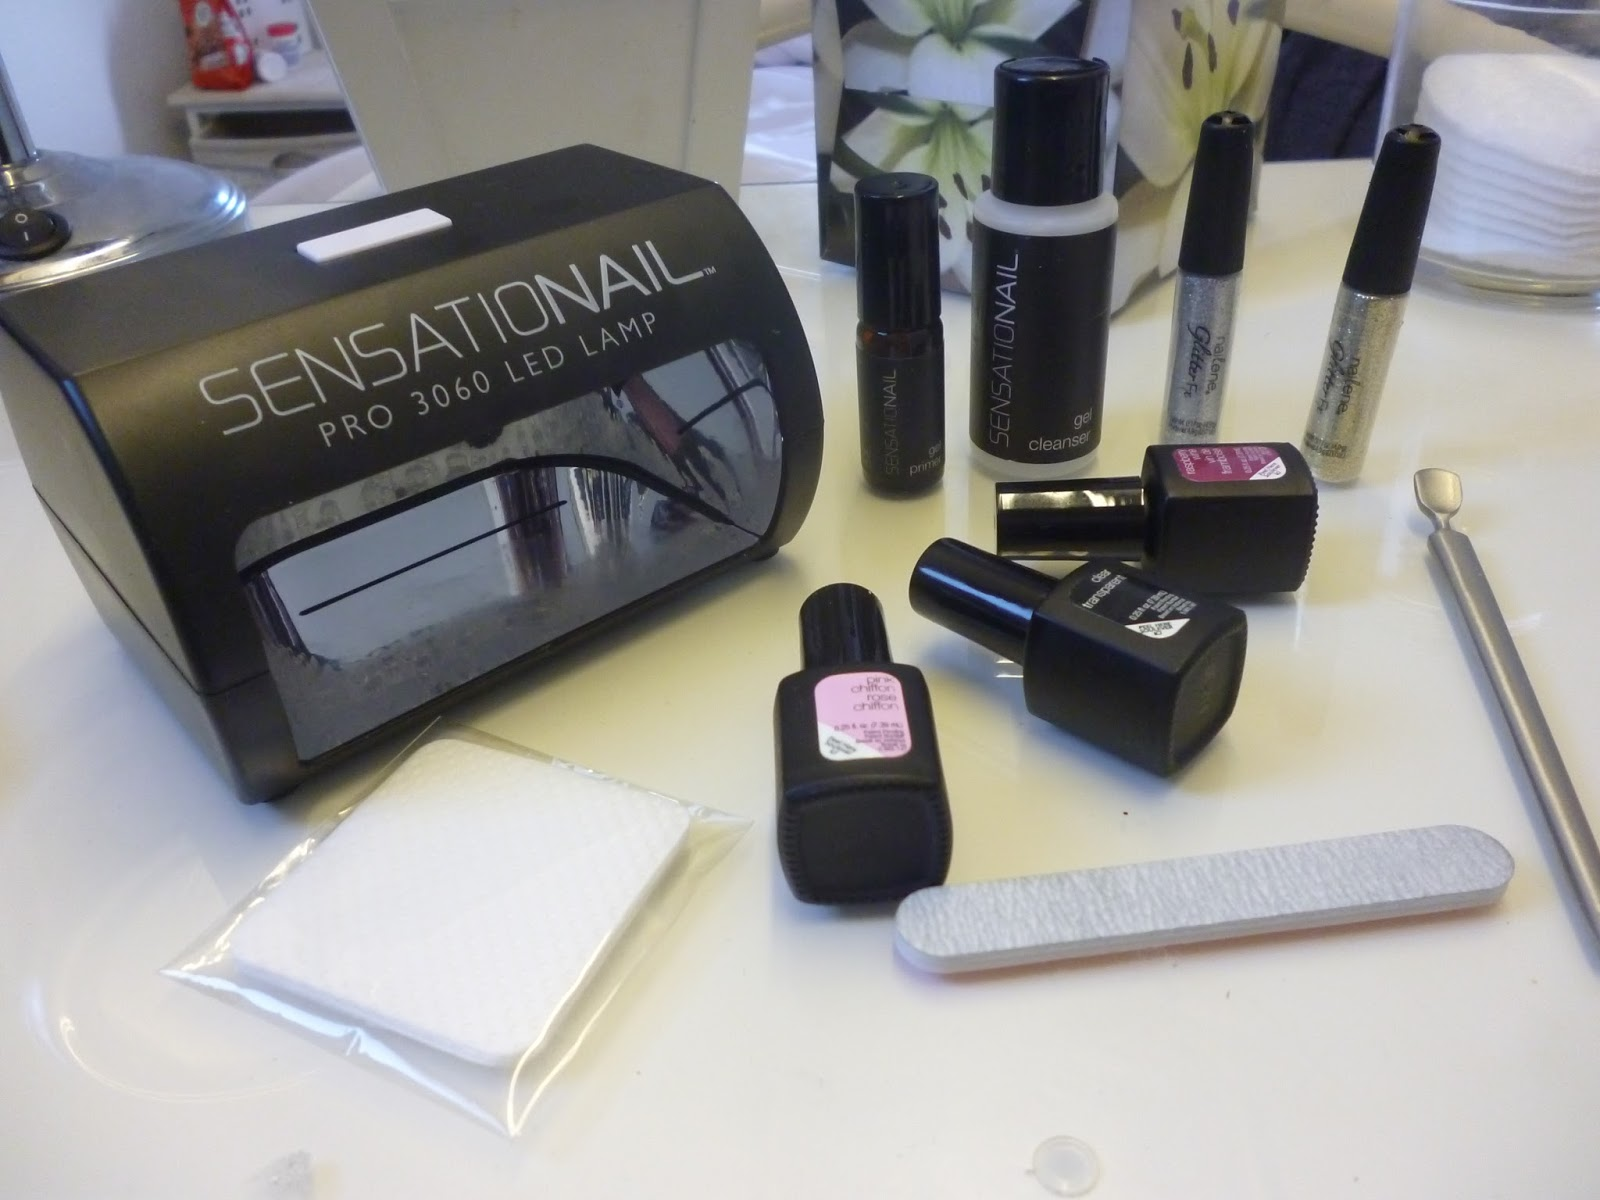 Sensationail Gel Nail Kit Review, swatches, manicure